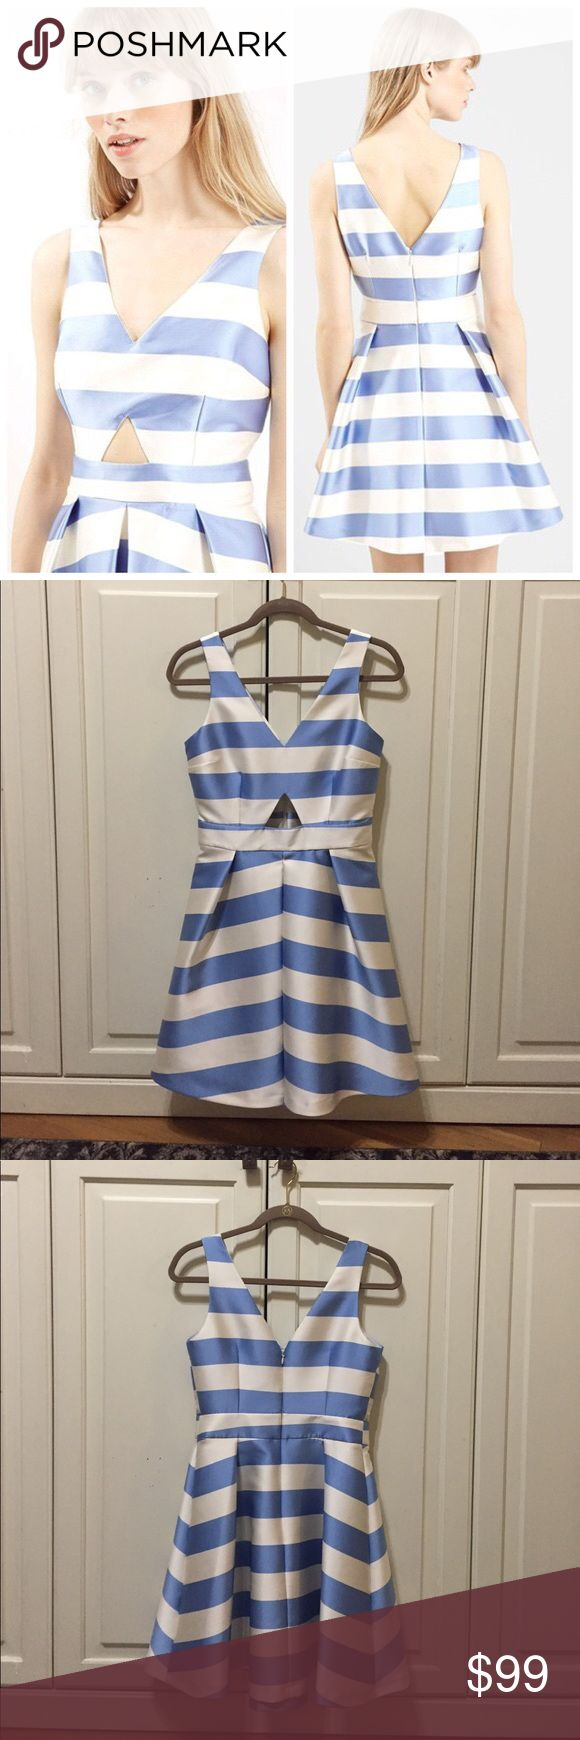 Topshop blue and white striped cocktail dress Perfect for a summer wedding! Topshop Blue and white striped dress. Front cutout detail. Zipper back. ONLY WORN ONCE! Excellent condition! Topshop Dresses